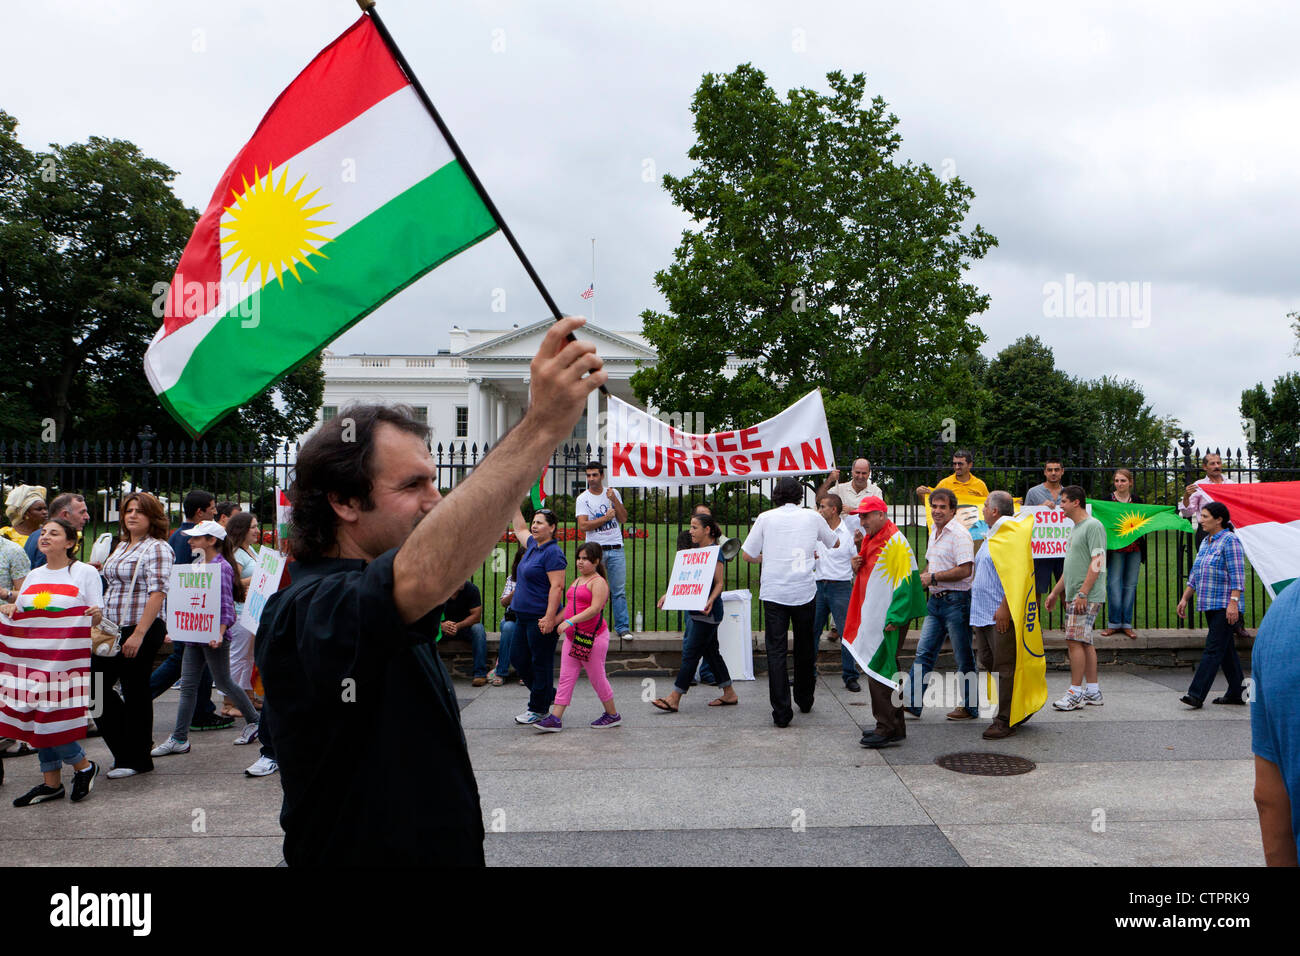 American Kurds protest in front of the White House - Stock Image